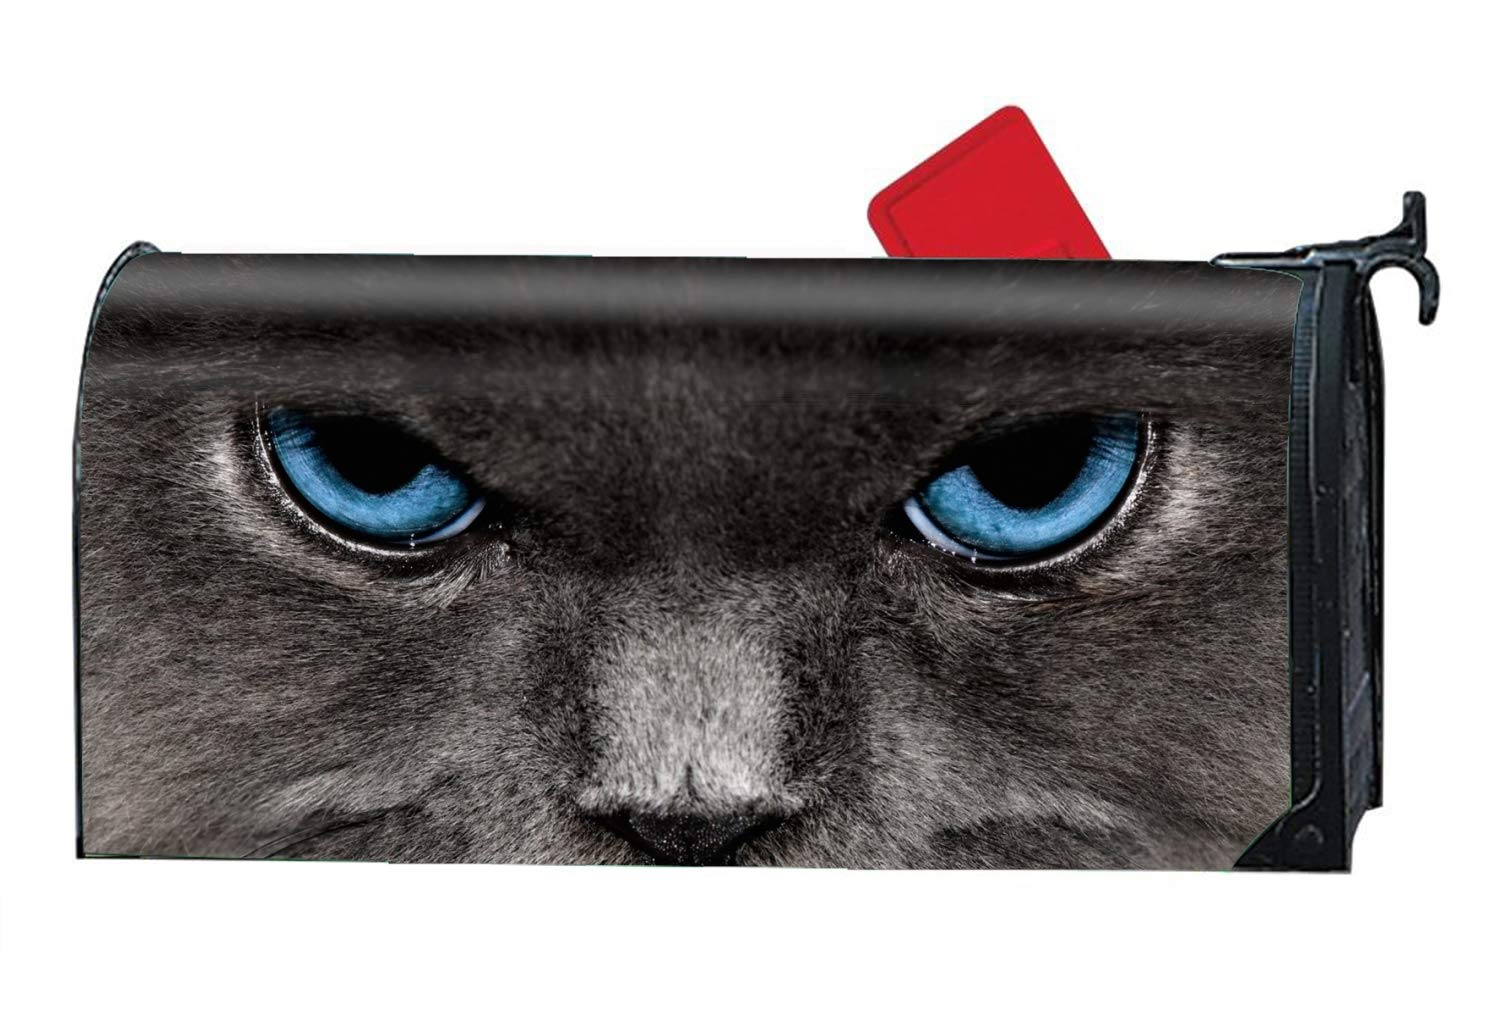 MAILL Animal Cats Magnetic Mailbox Cover - America Themed, Decorative Vintage Vinyl Mailbox Wrap for Standard Size by MAILL